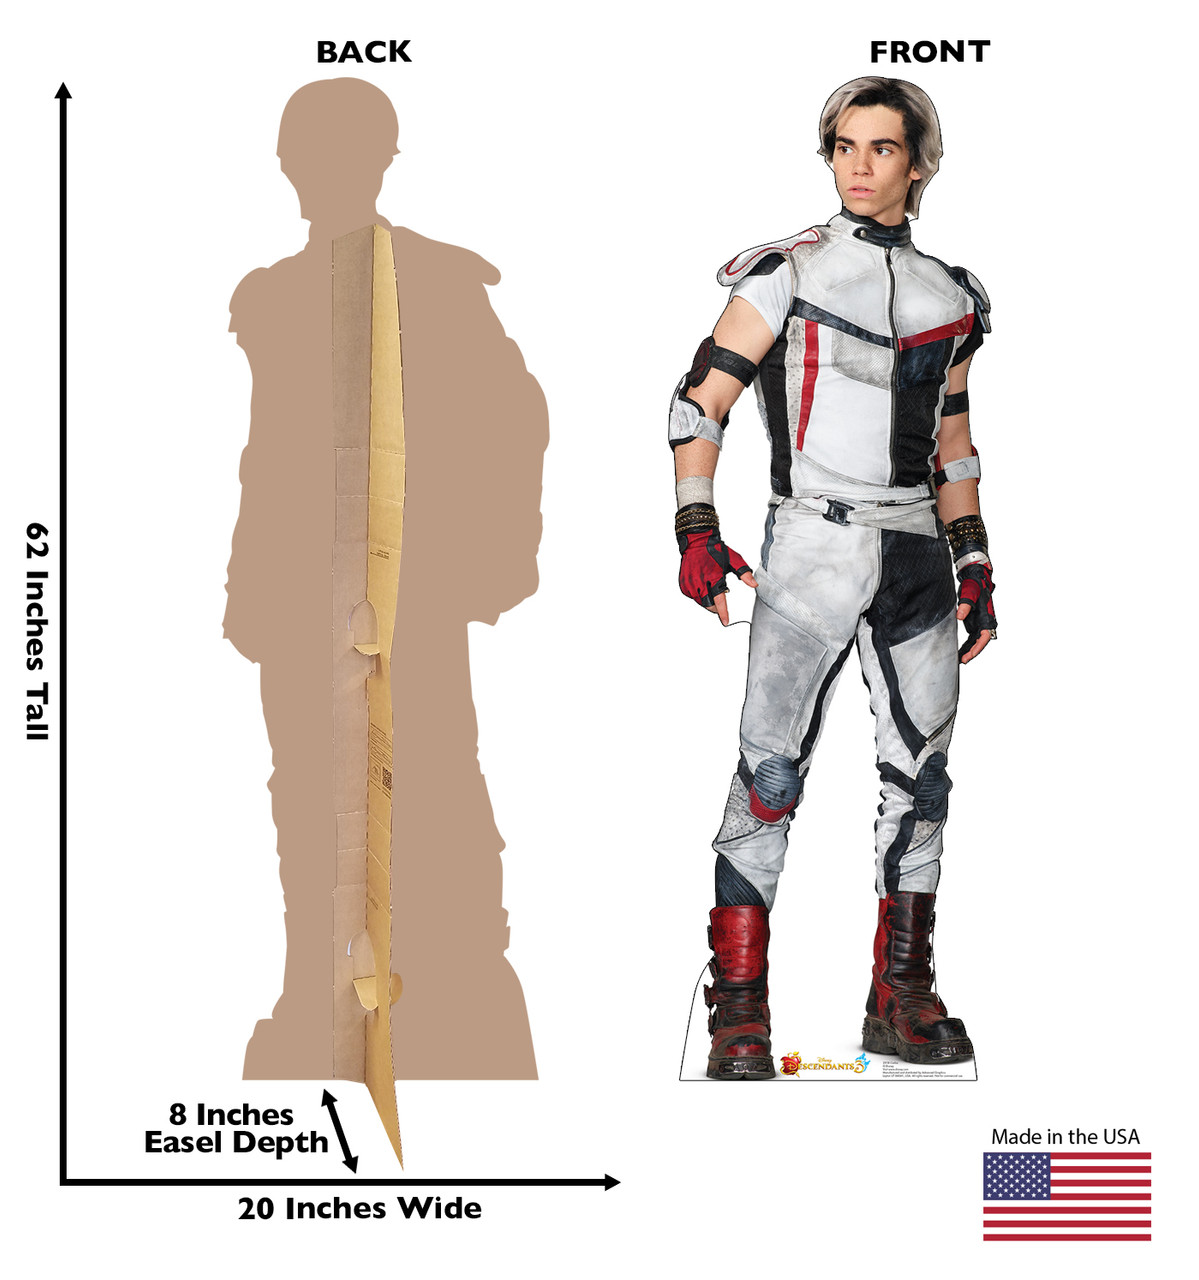 Carlos - Disney's Descendants 3 Cardboard Cutout Front and Back View